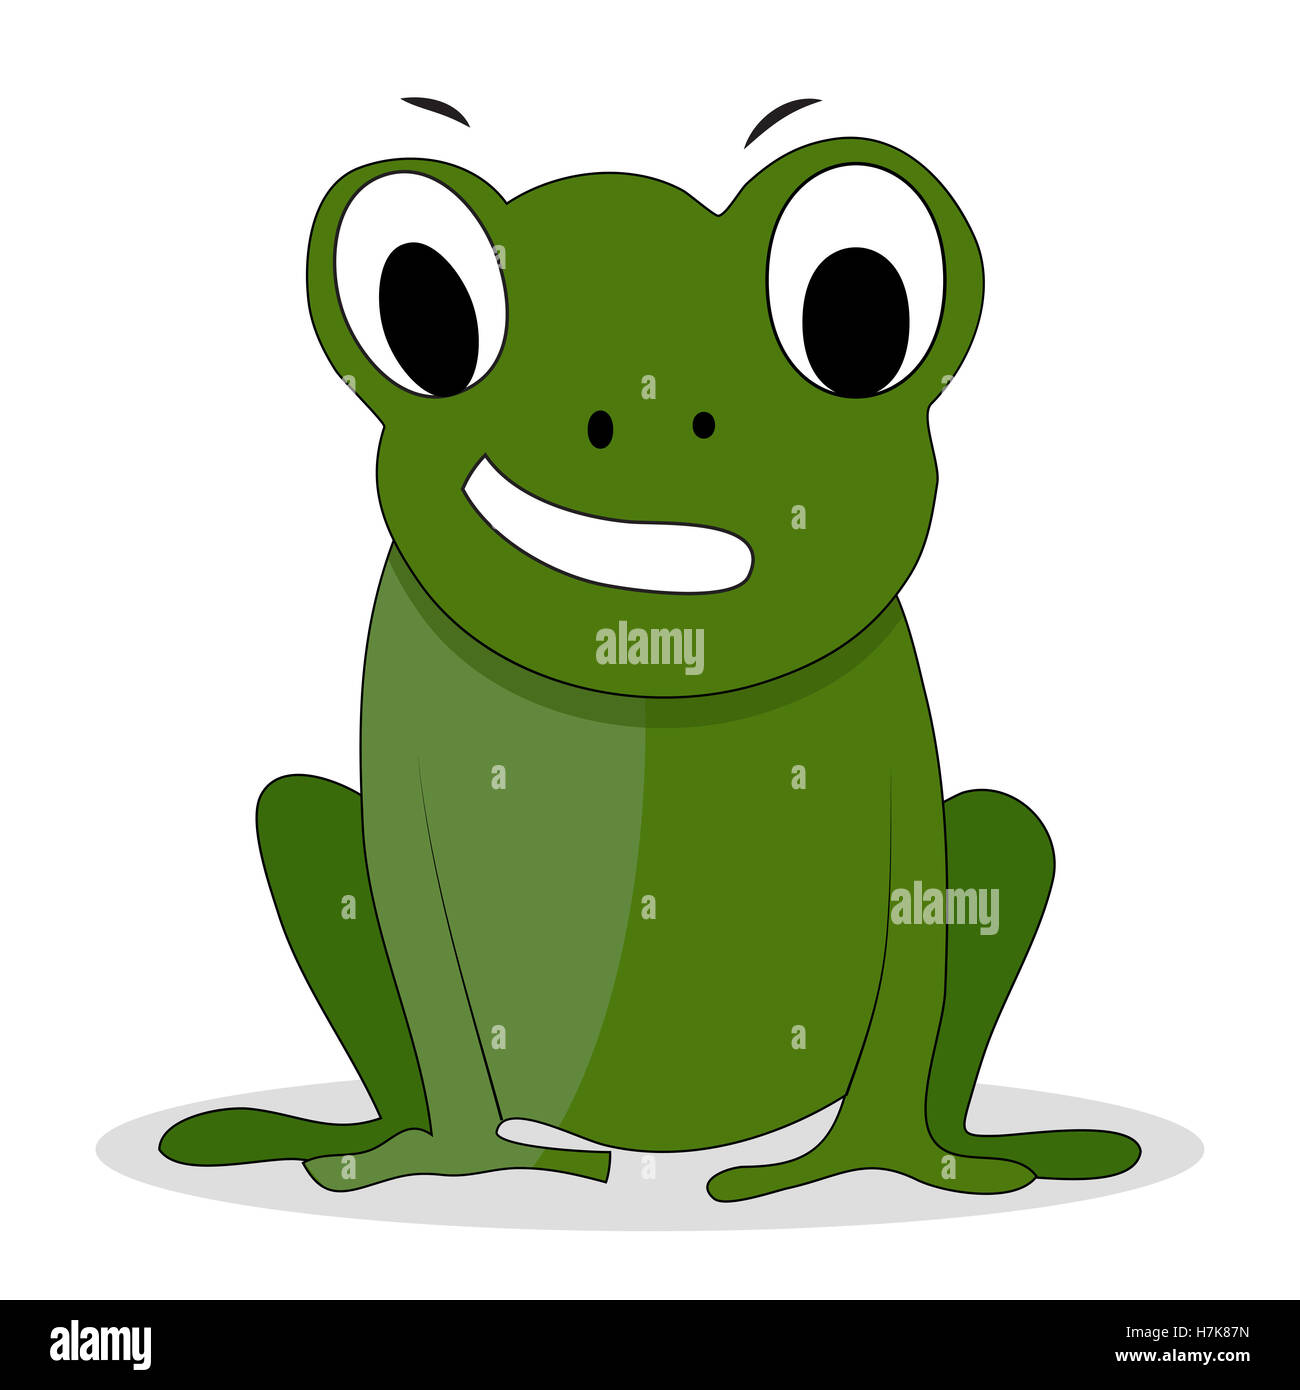 Grenouille Verte Caractere Dessin Anime Cartoon Animal Le Prince